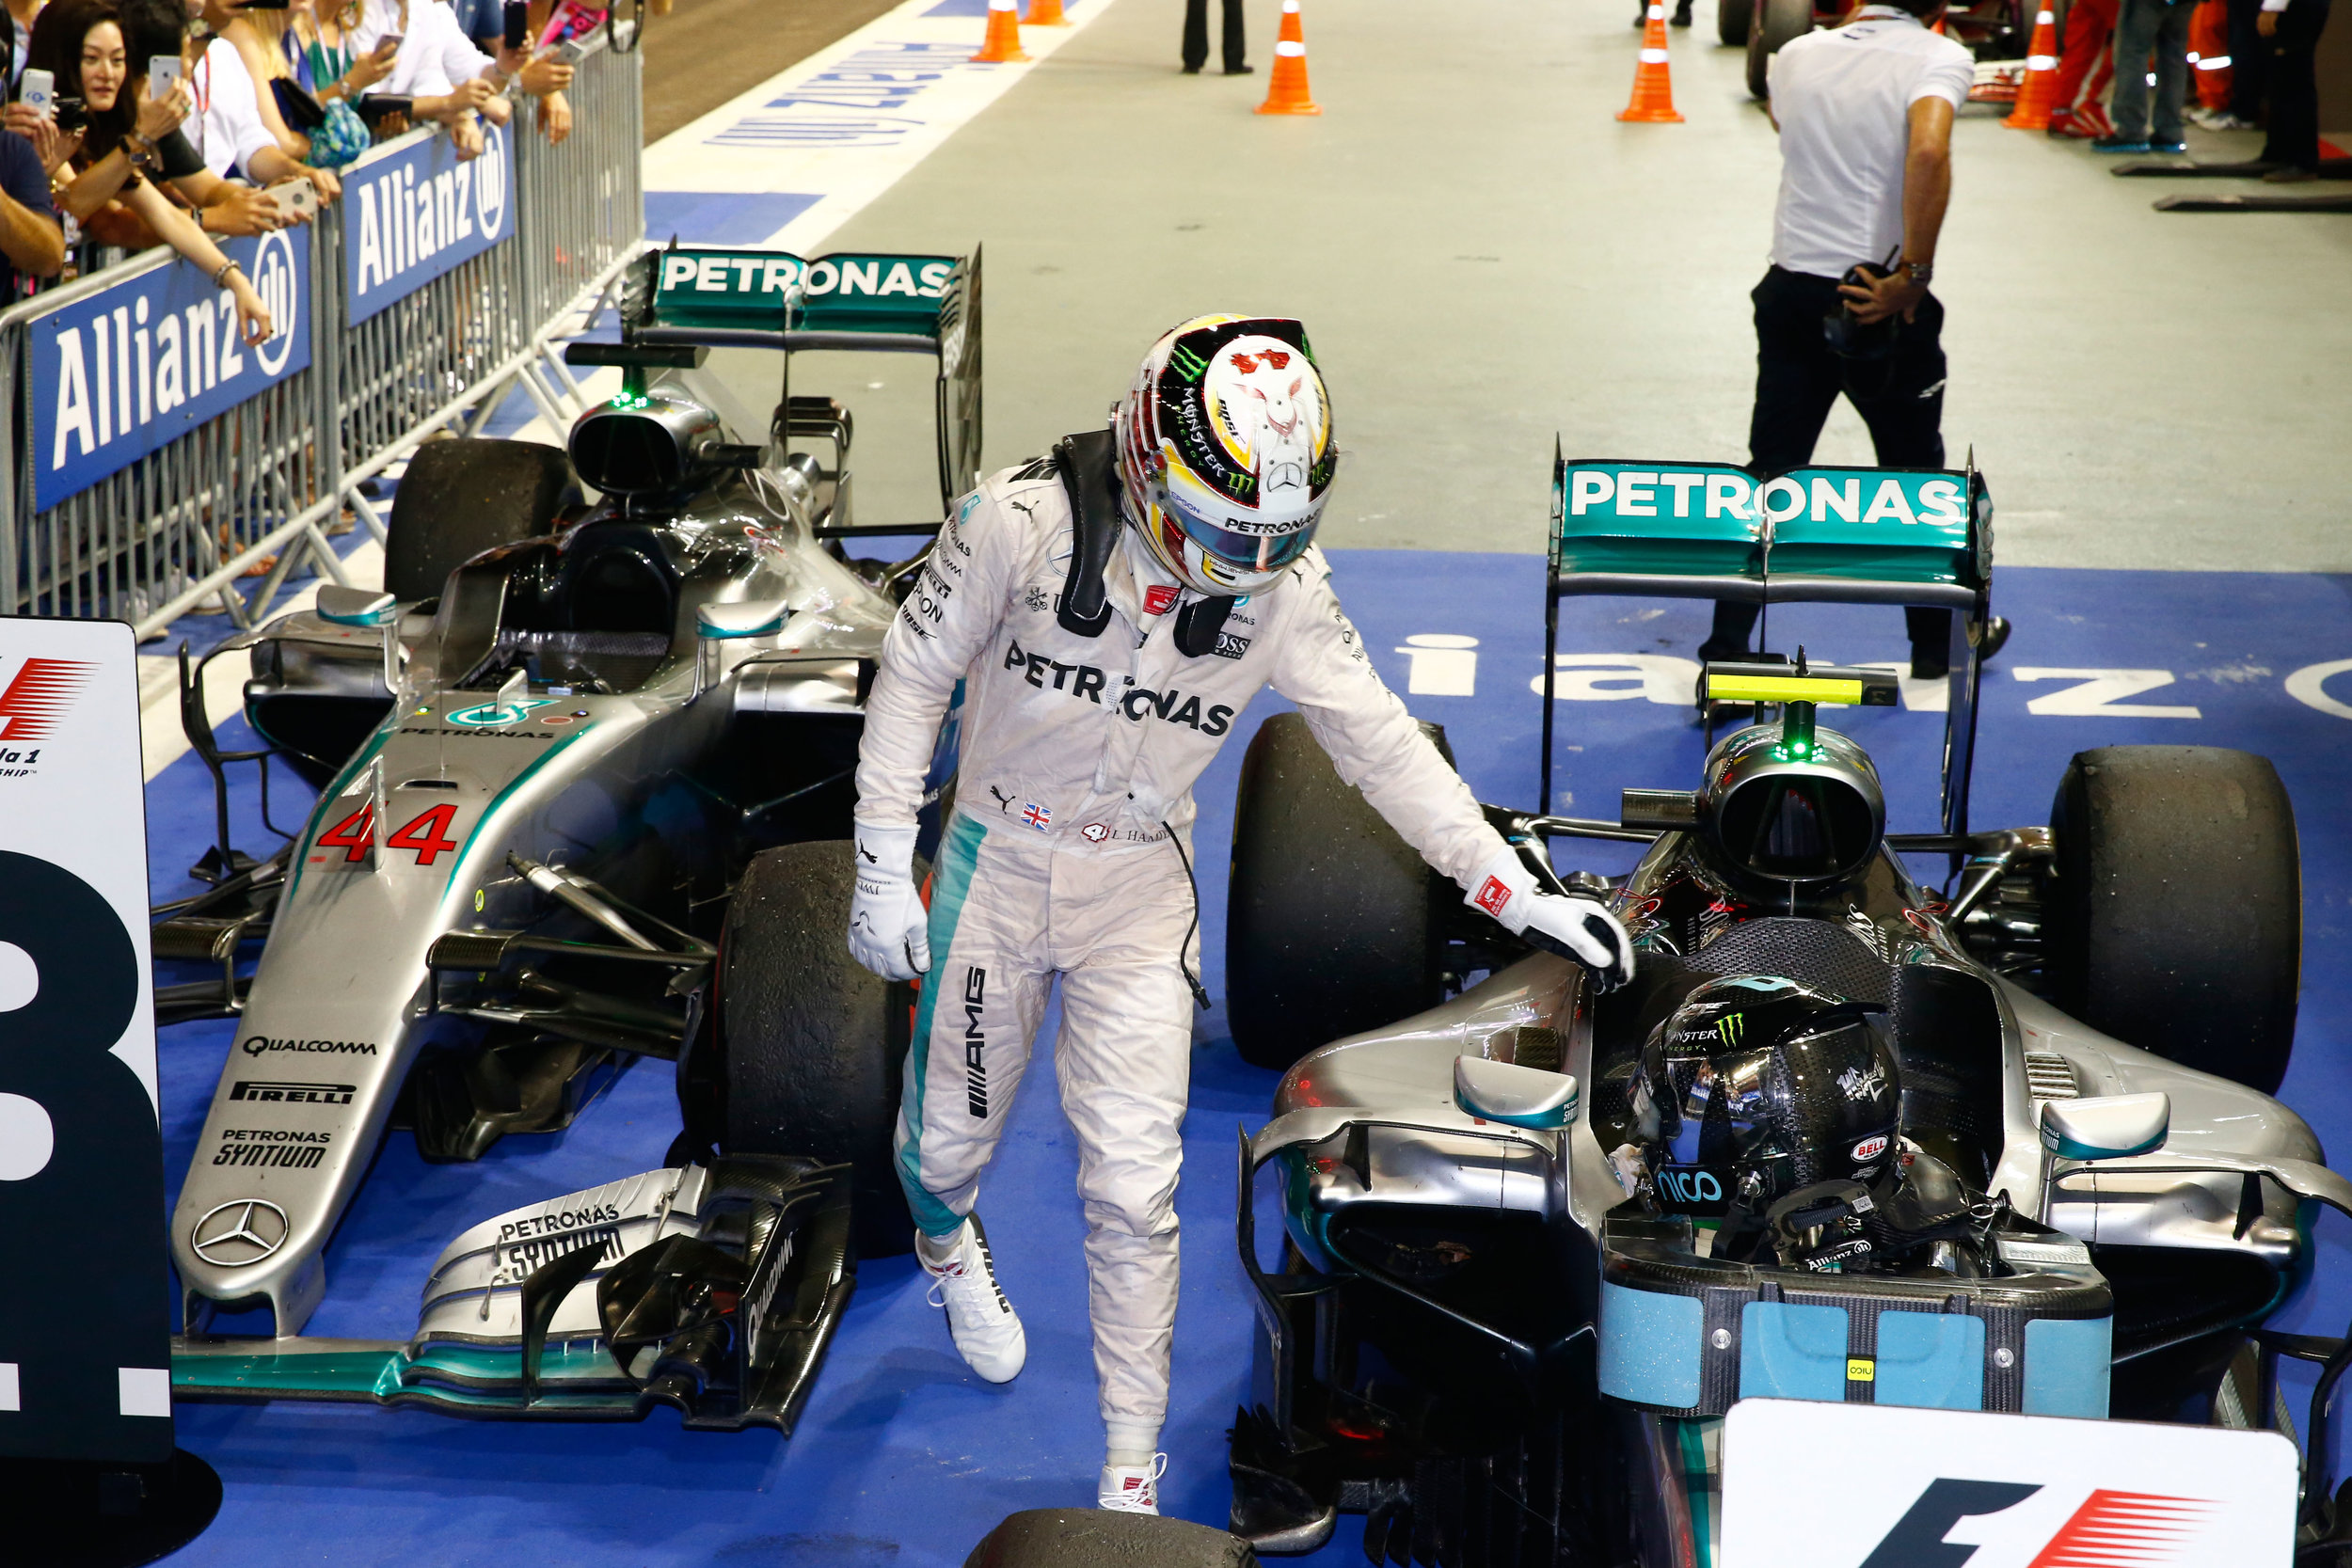 Hamilton congratulates Rosberg, or possibly tries to flick his ear. (Pic: Mercedes)